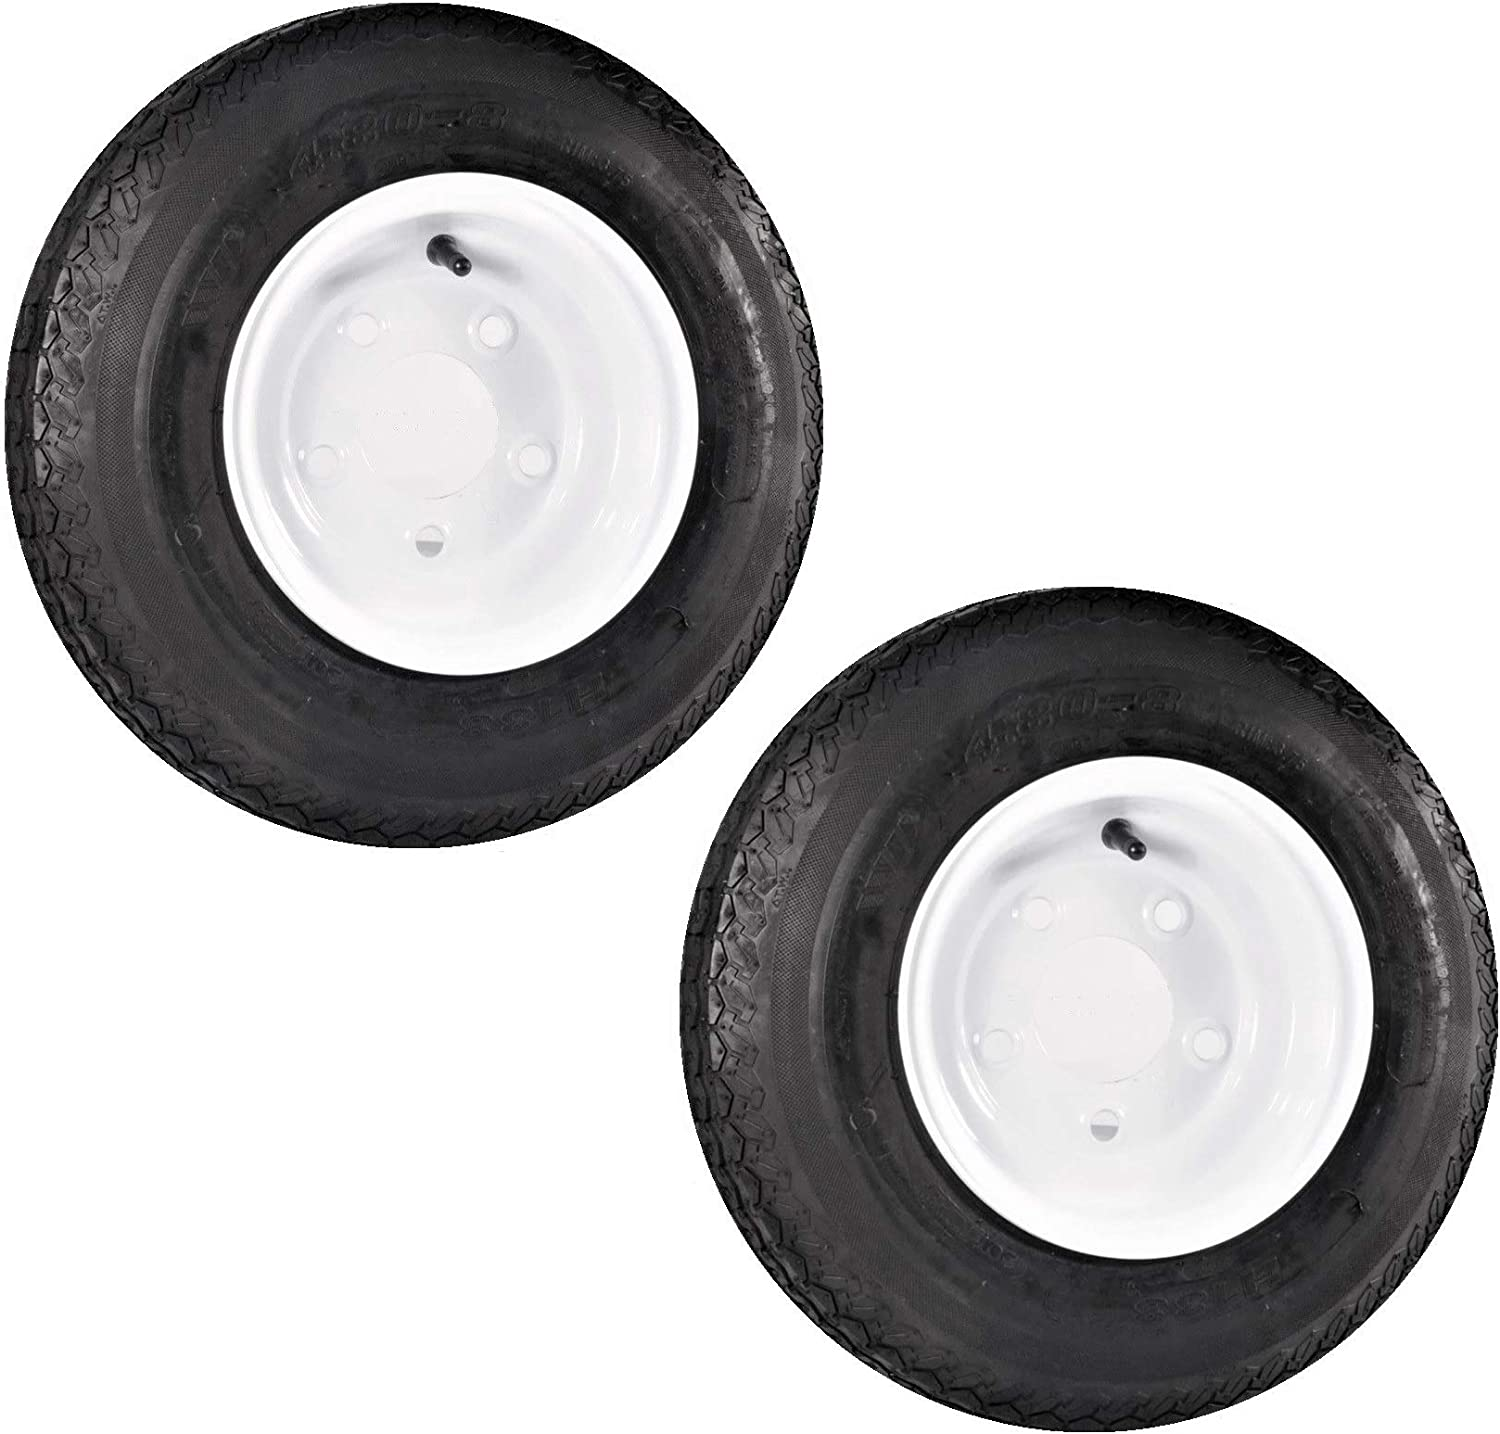 2-Pack Trailer Tire On Ranking TOP20 Rim Luxury 480X8 White C 5 Conventional Load Lug